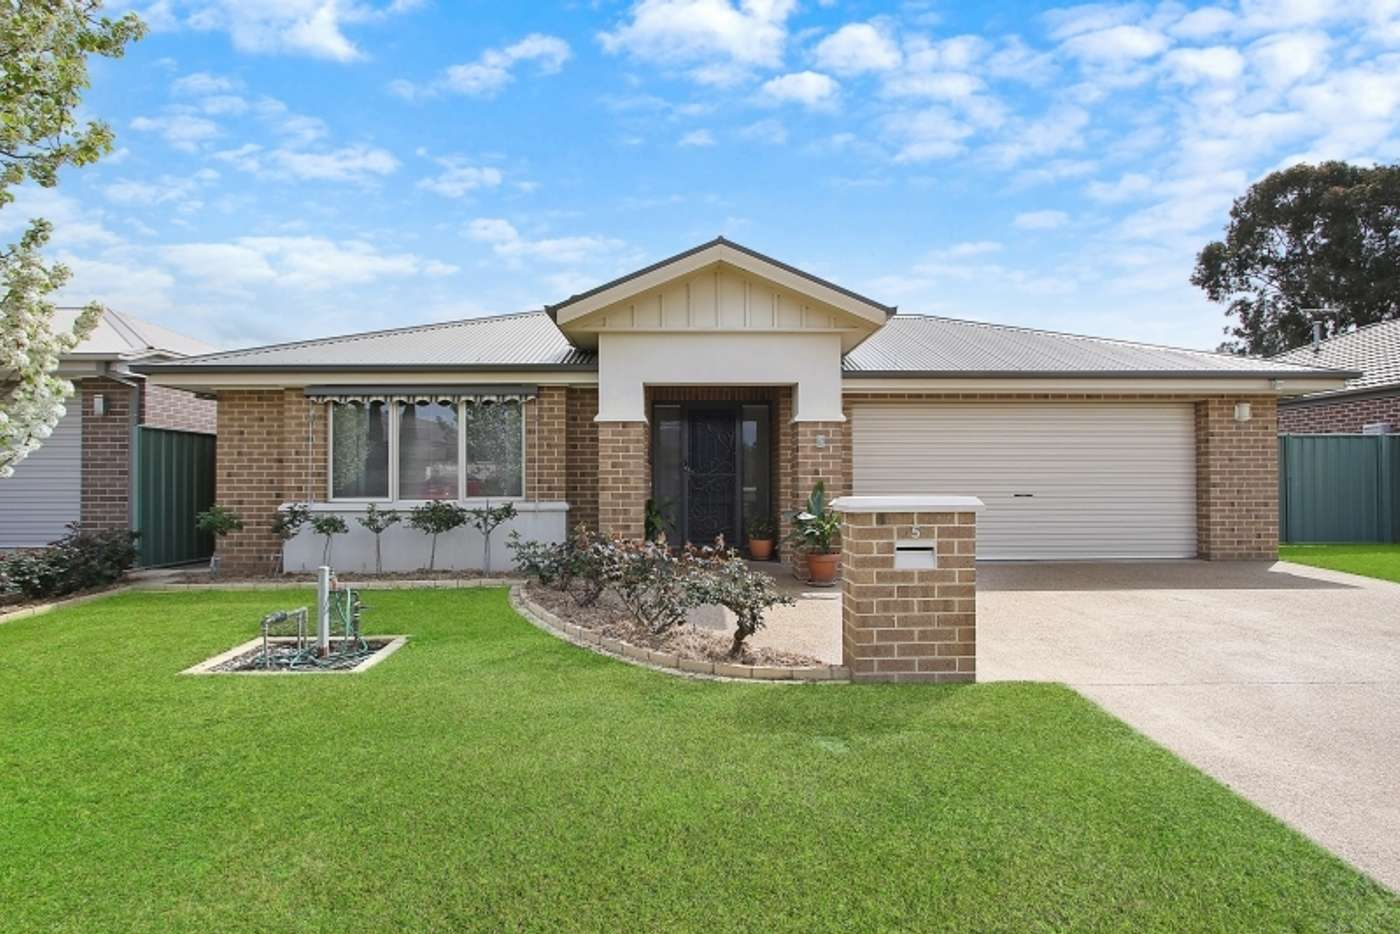 Main view of Homely house listing, 5 Inwood Cres, Wodonga VIC 3690